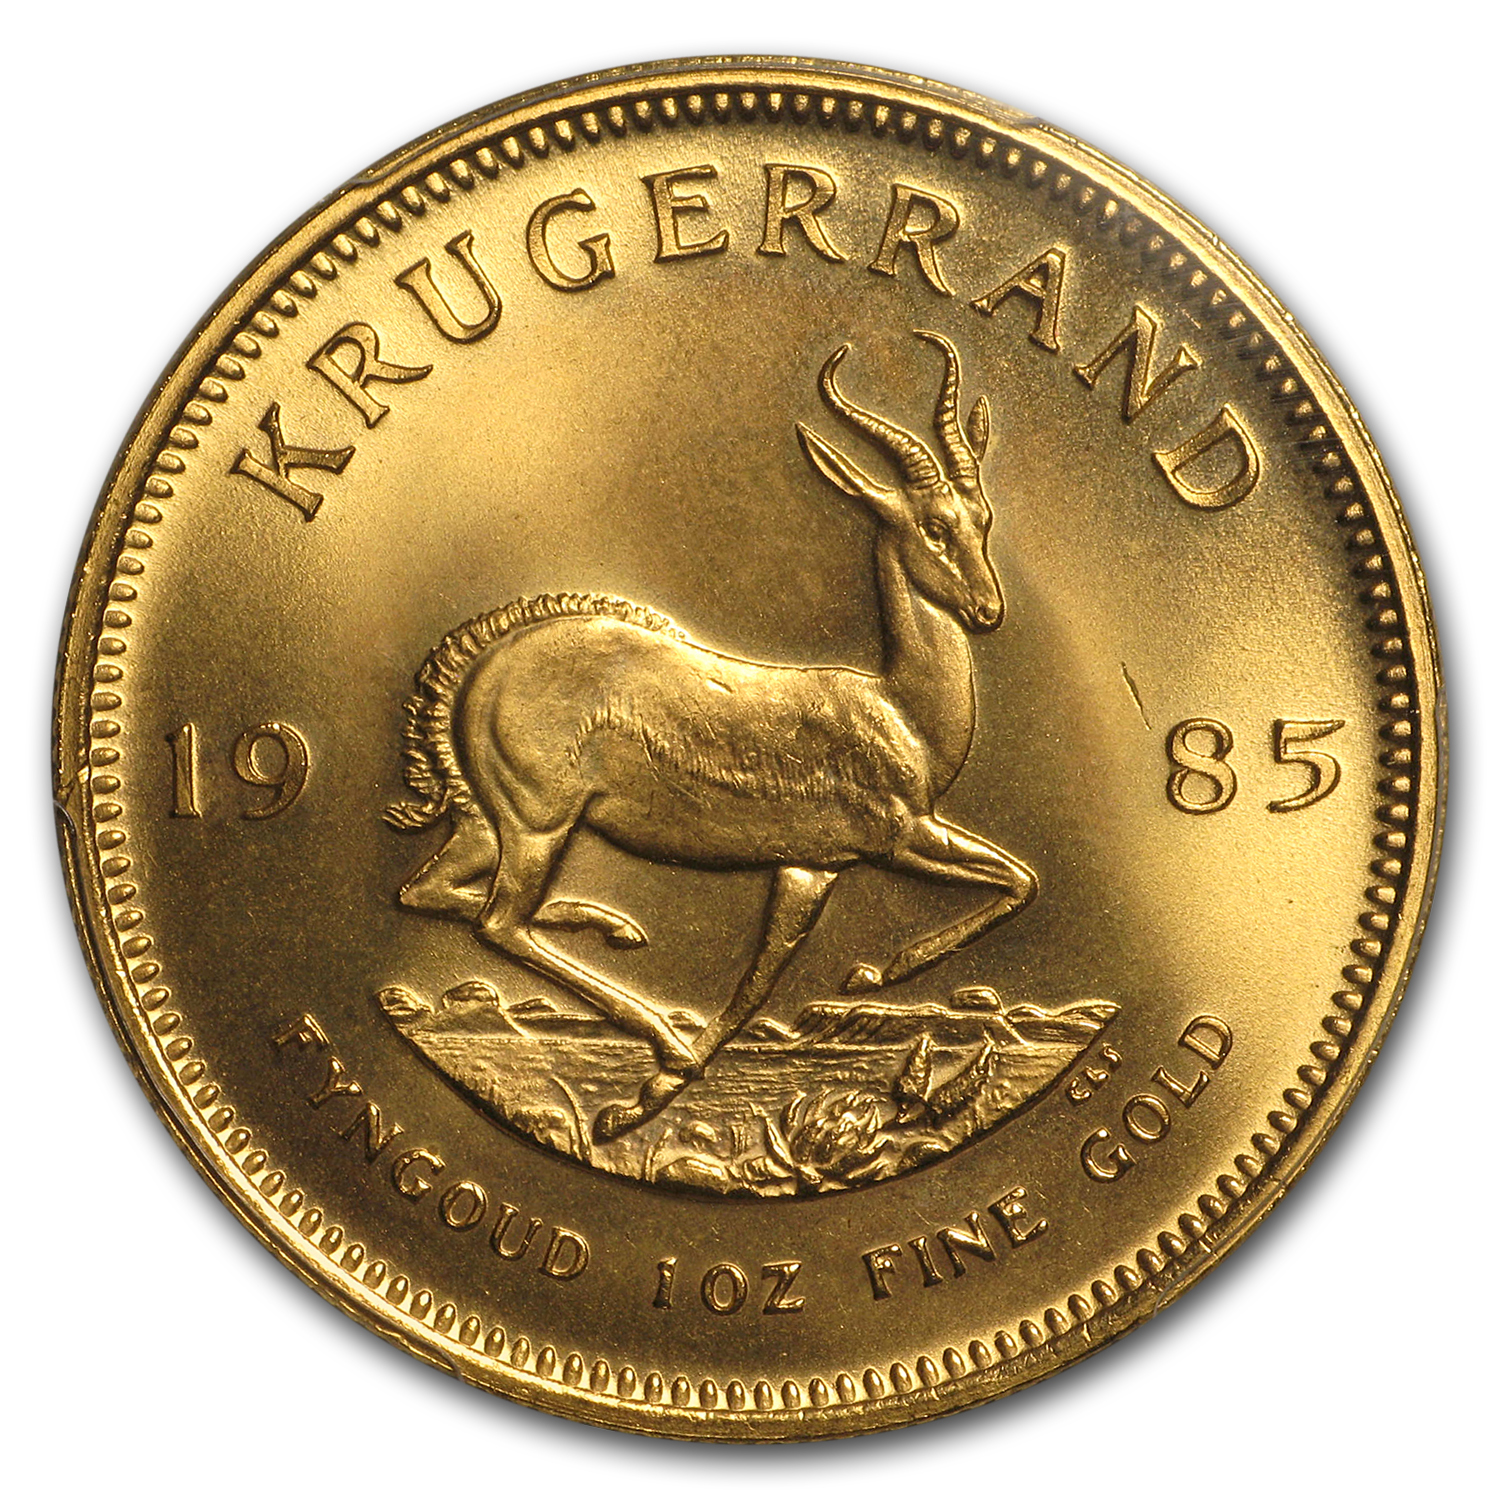 1985 South Africa 1 oz Gold Krugerrand MS-67 PCGS